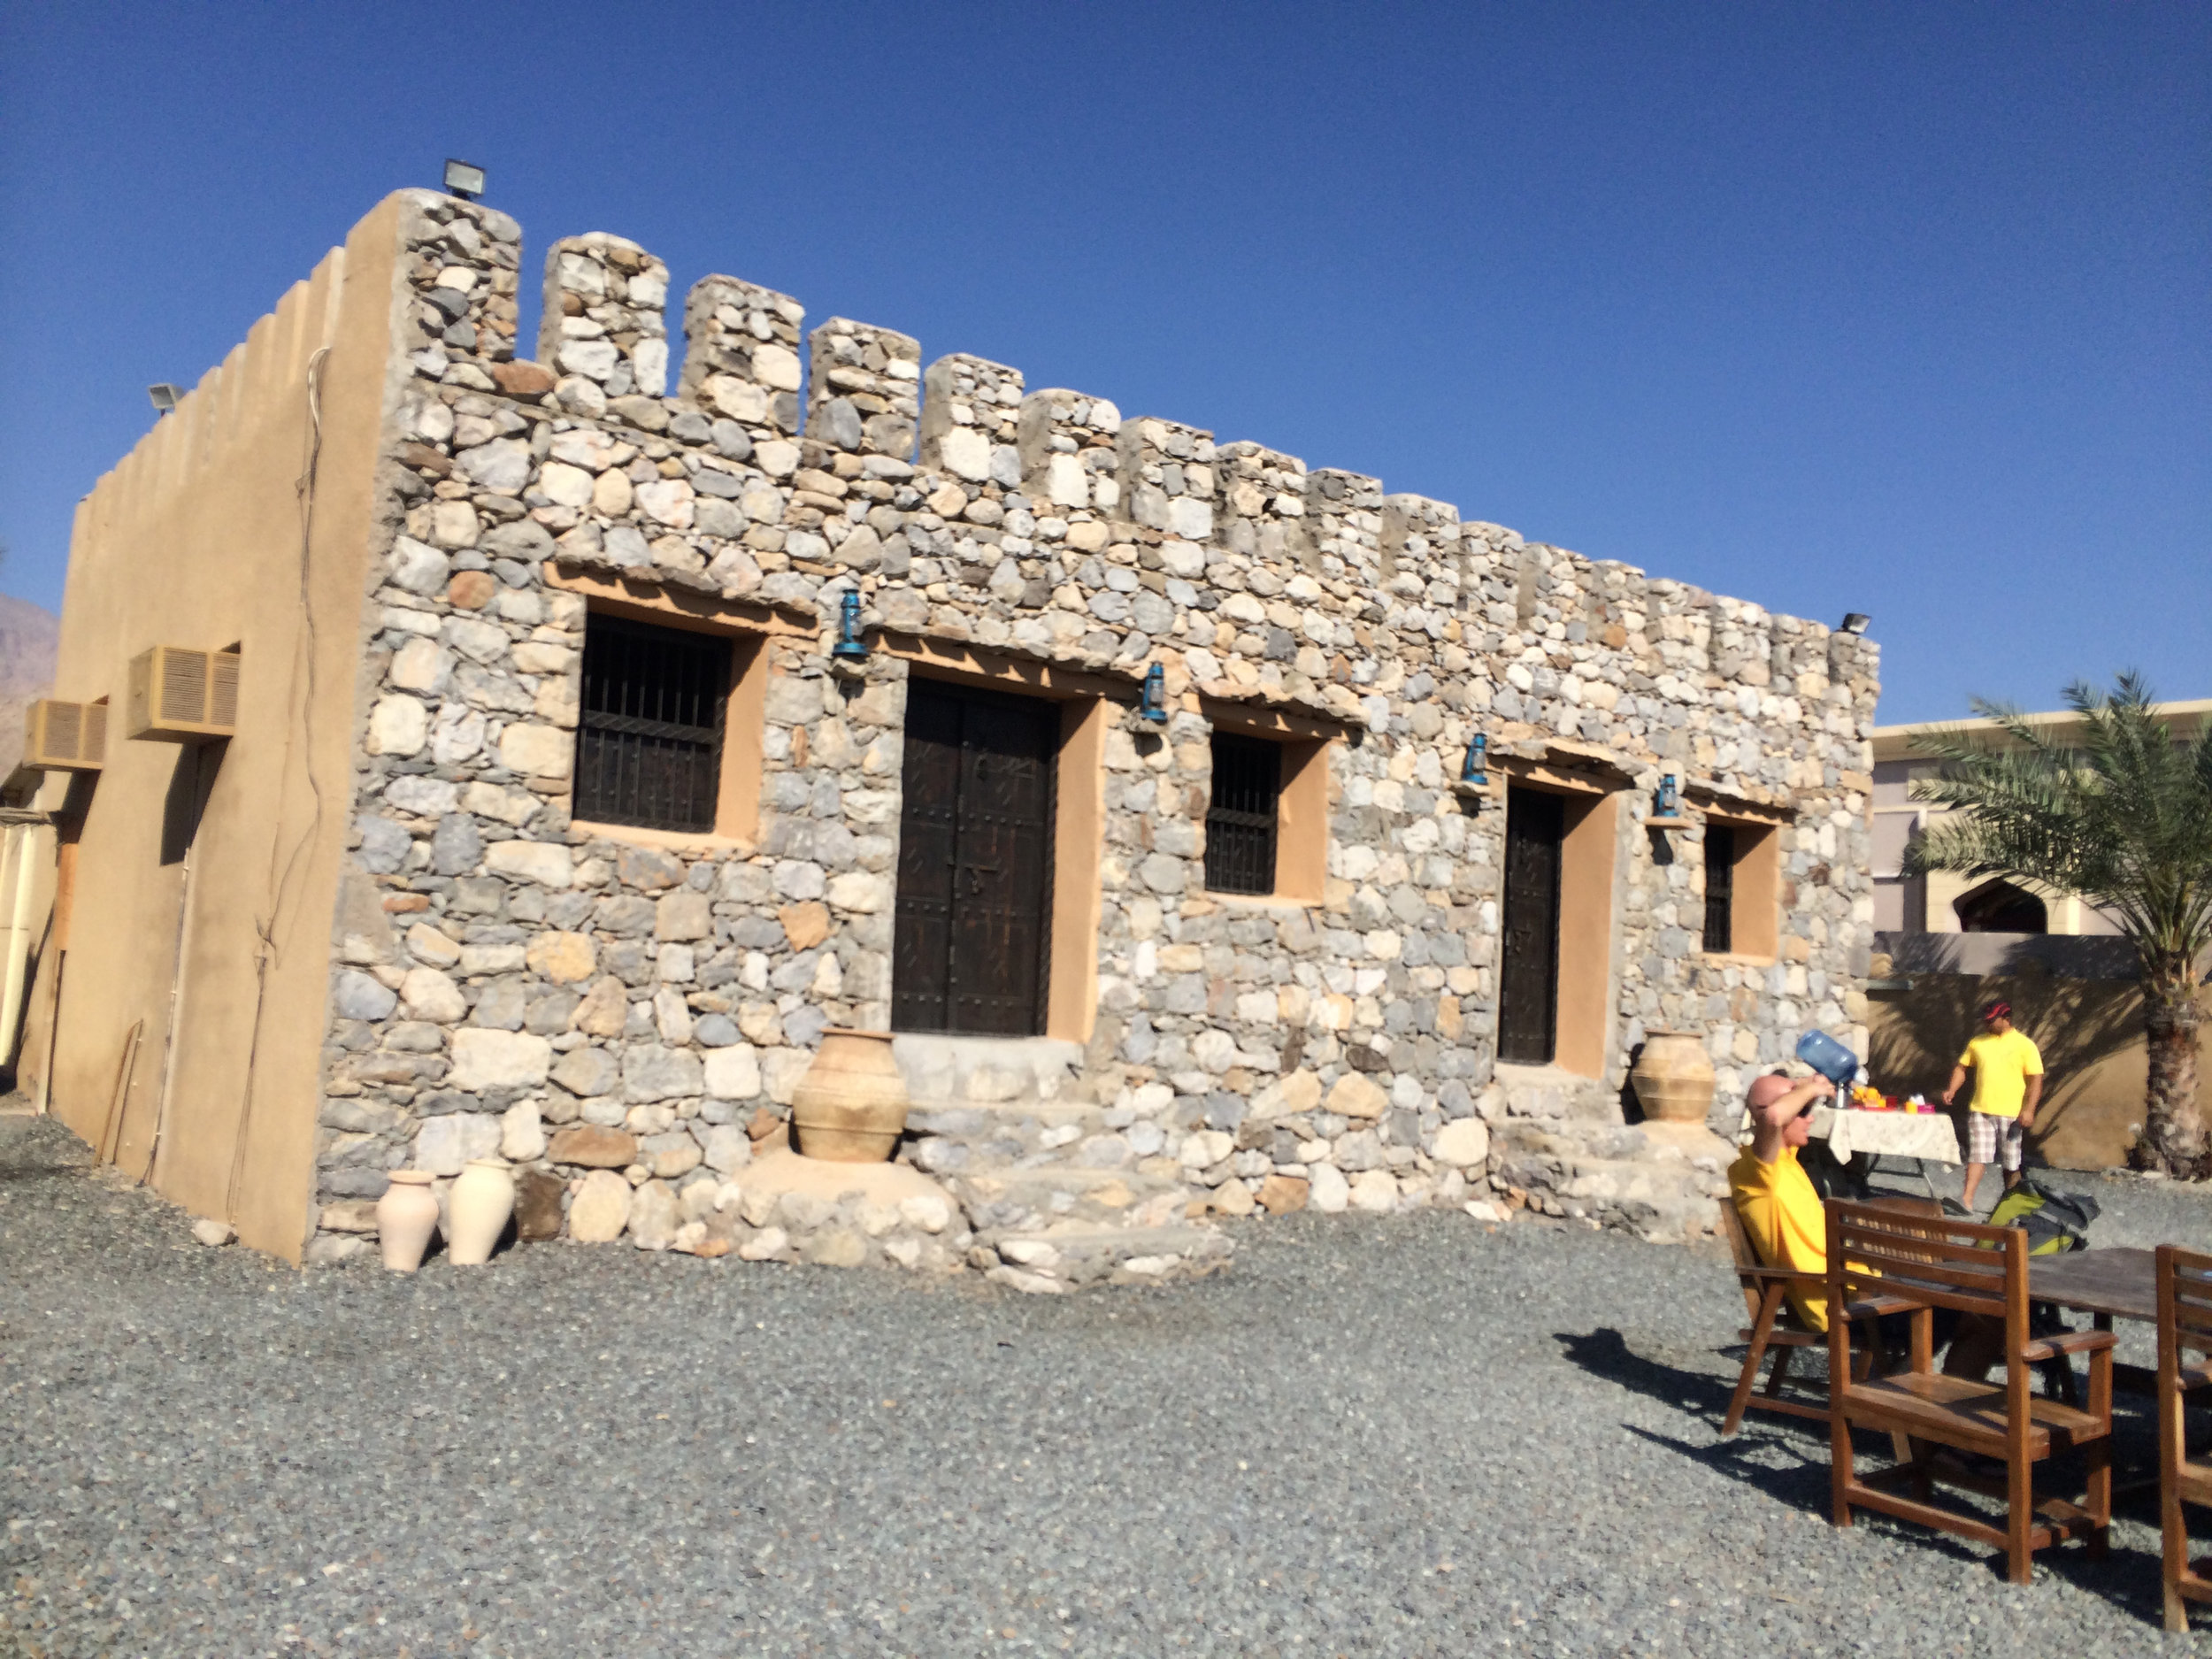 Absolute Adventure's activity center in Dibba, Oman where we picked up our packs and lunches and set out on our adventure.